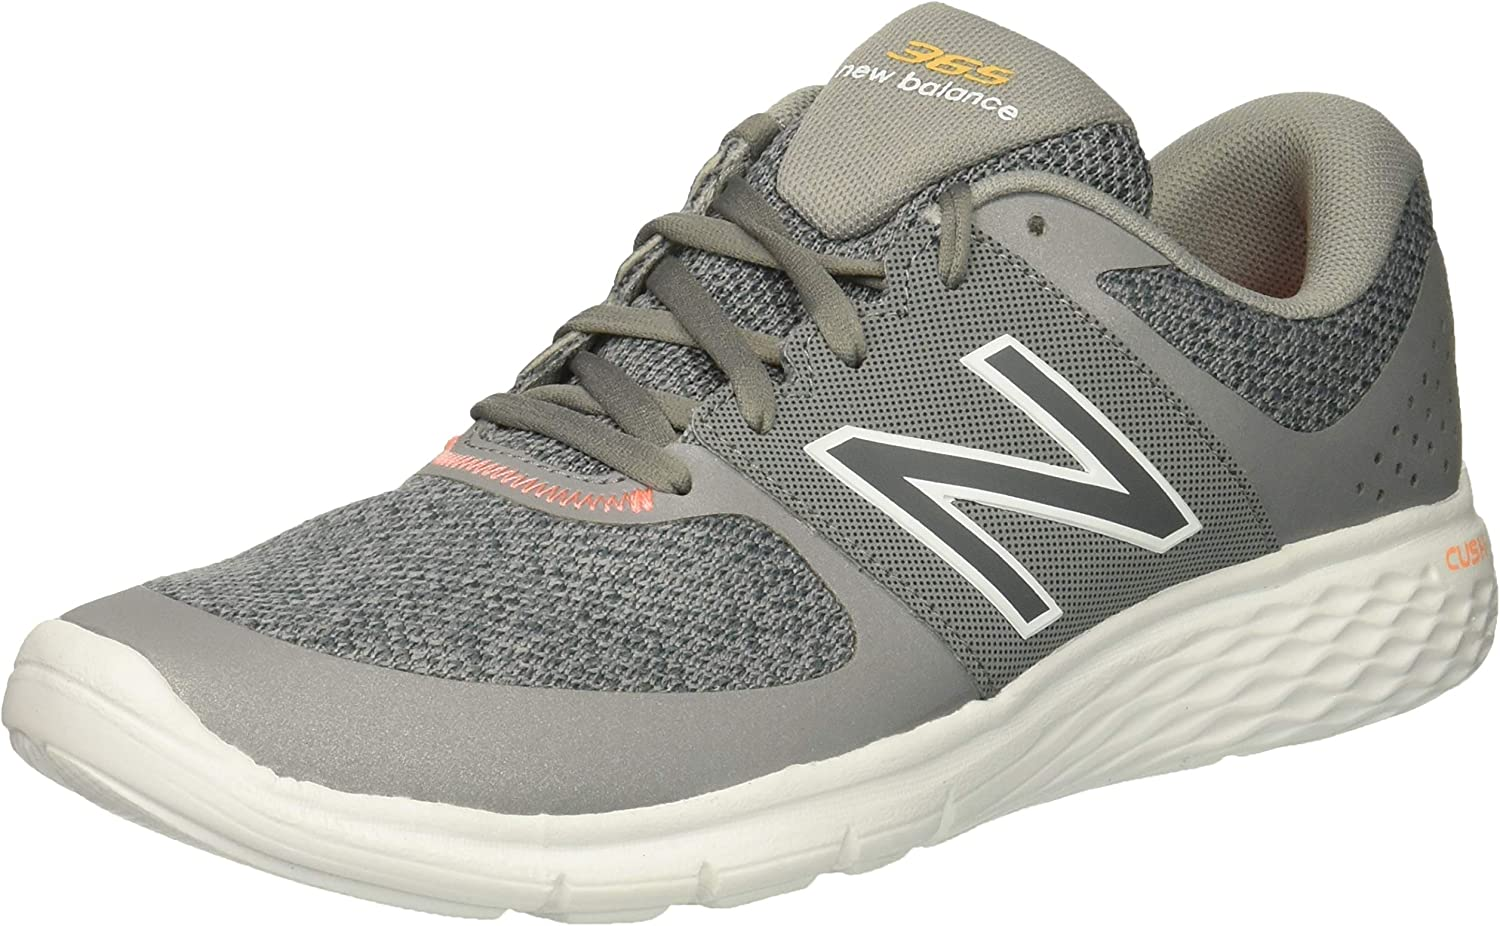 New Balance Womens Wa365v1 Cush + Walking shoes